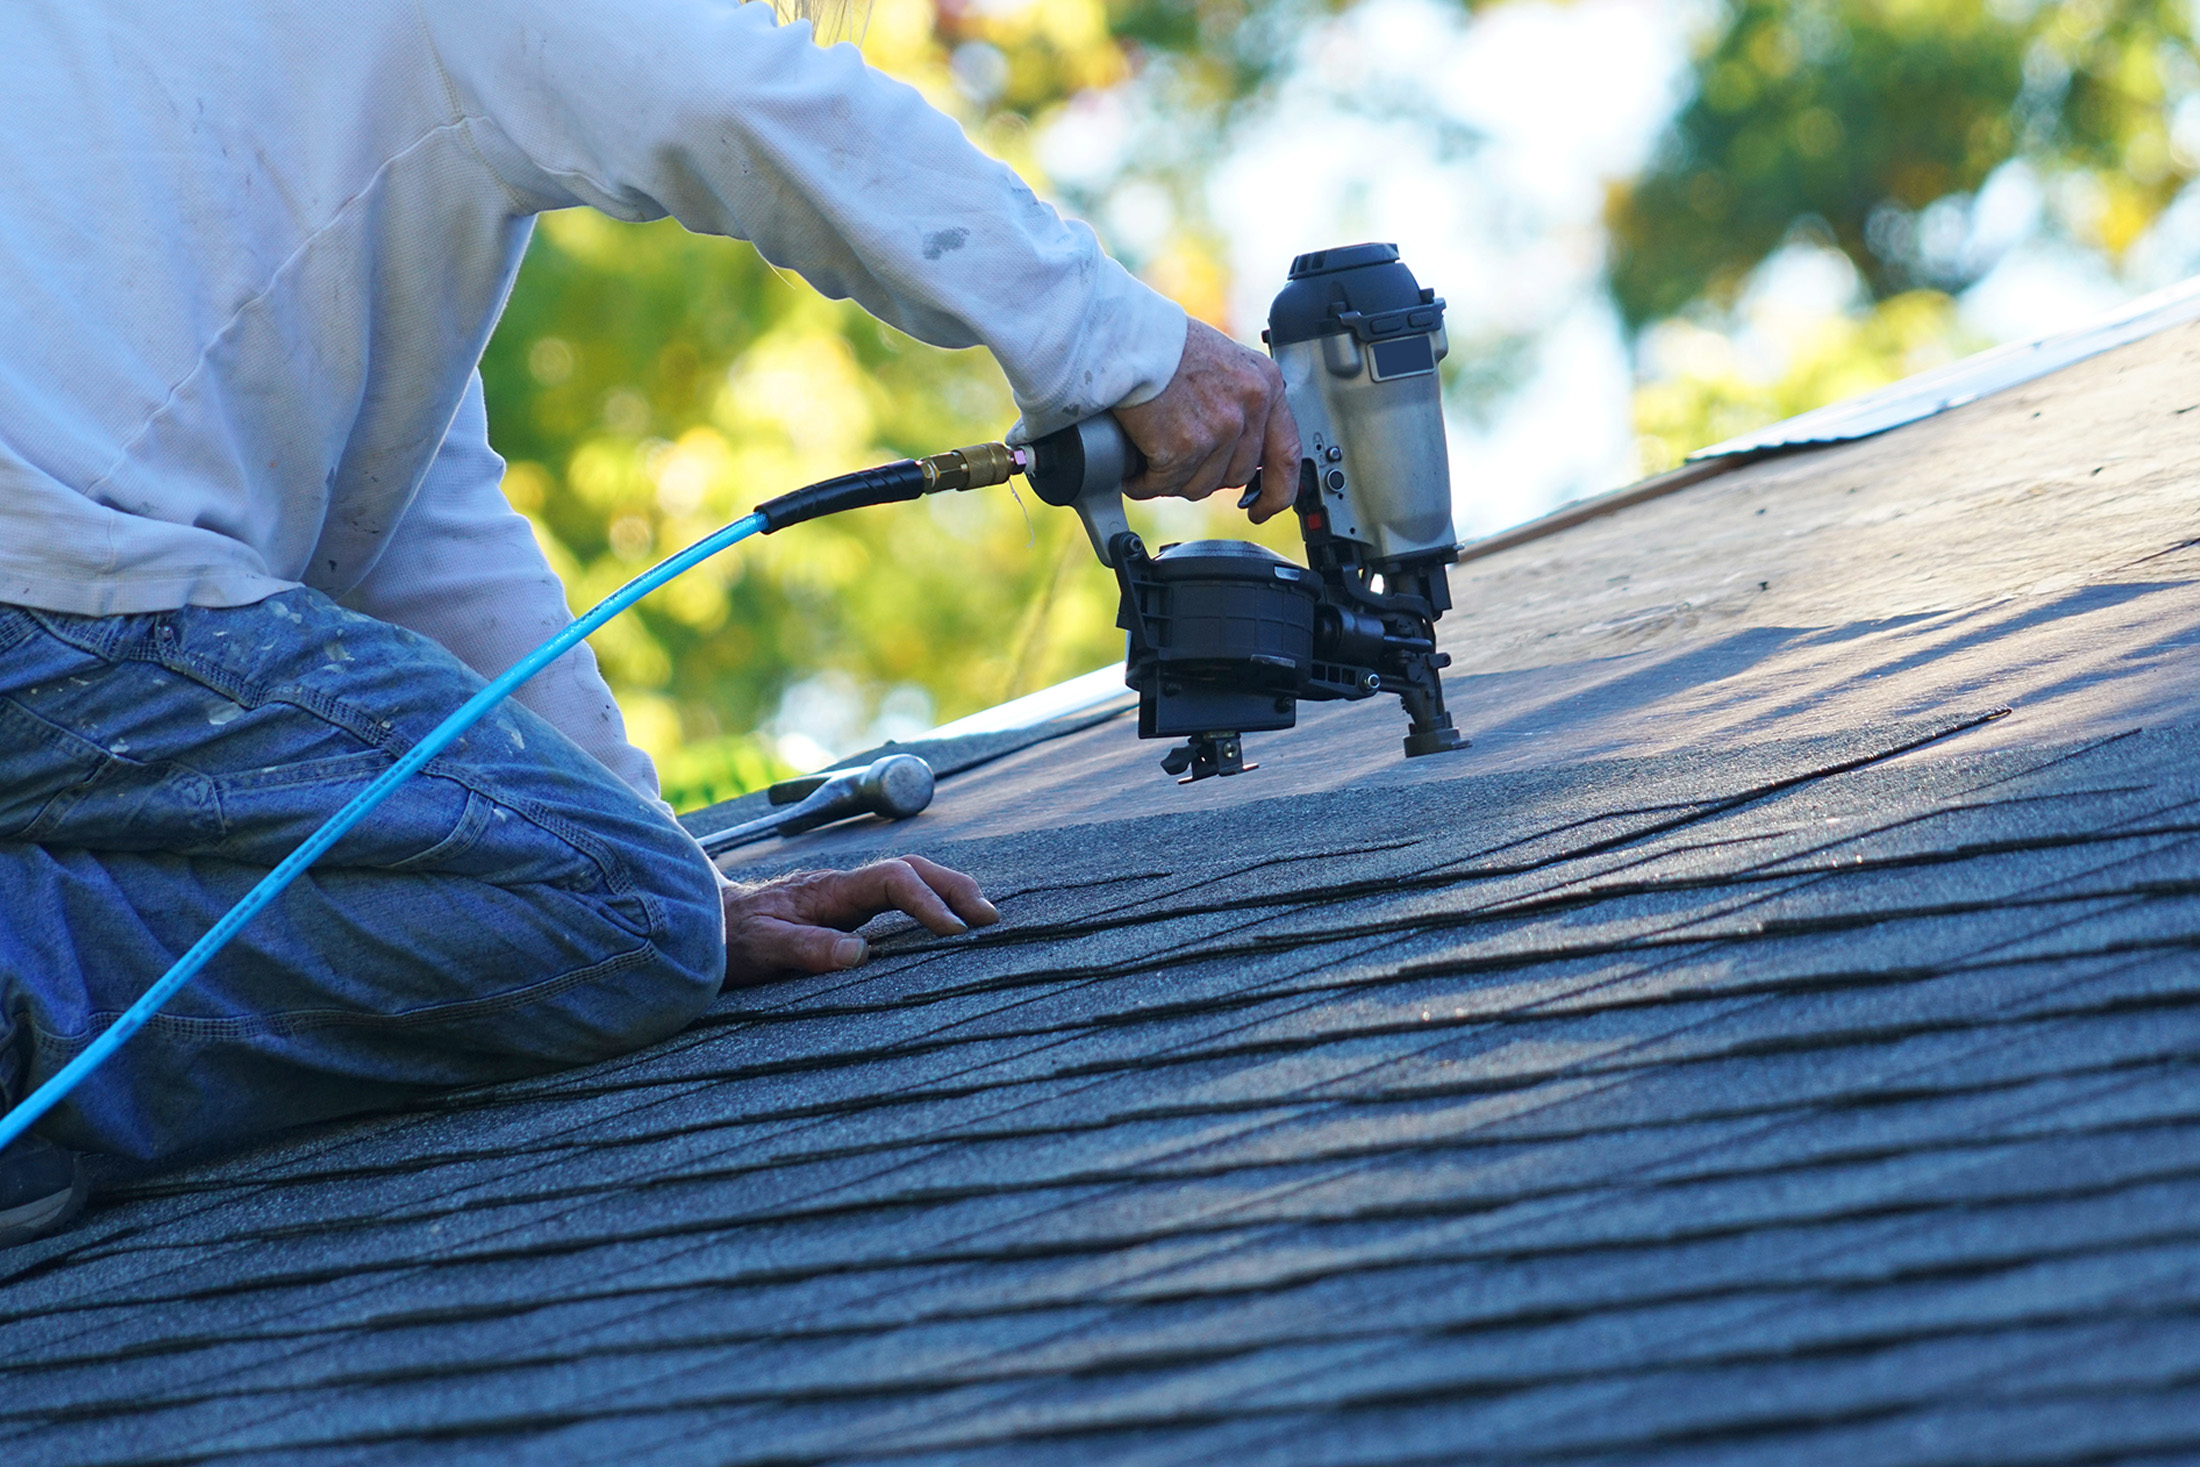 roofing services in port st lucie and melbourne fl, brevard county